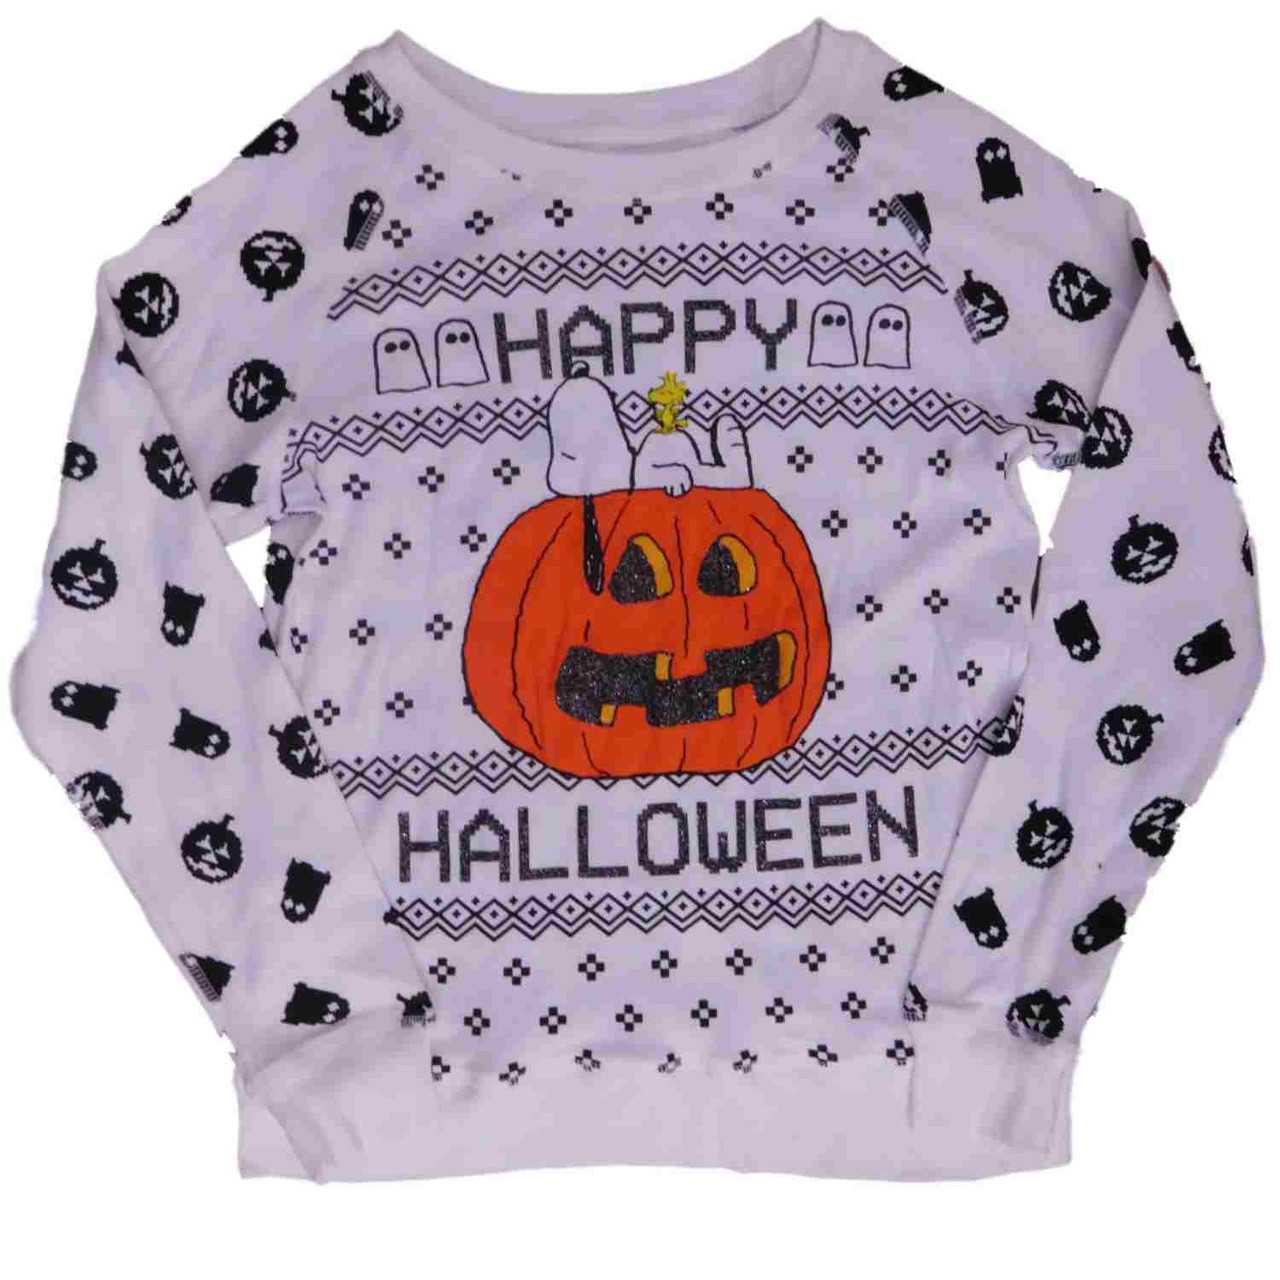 0e91fe63 ... Halloween Snoopy Sweatshirt Pumpkin Top.  https://d3d71ba2asa5oz.cloudfront.net/33000706/images/2peanuts062217.